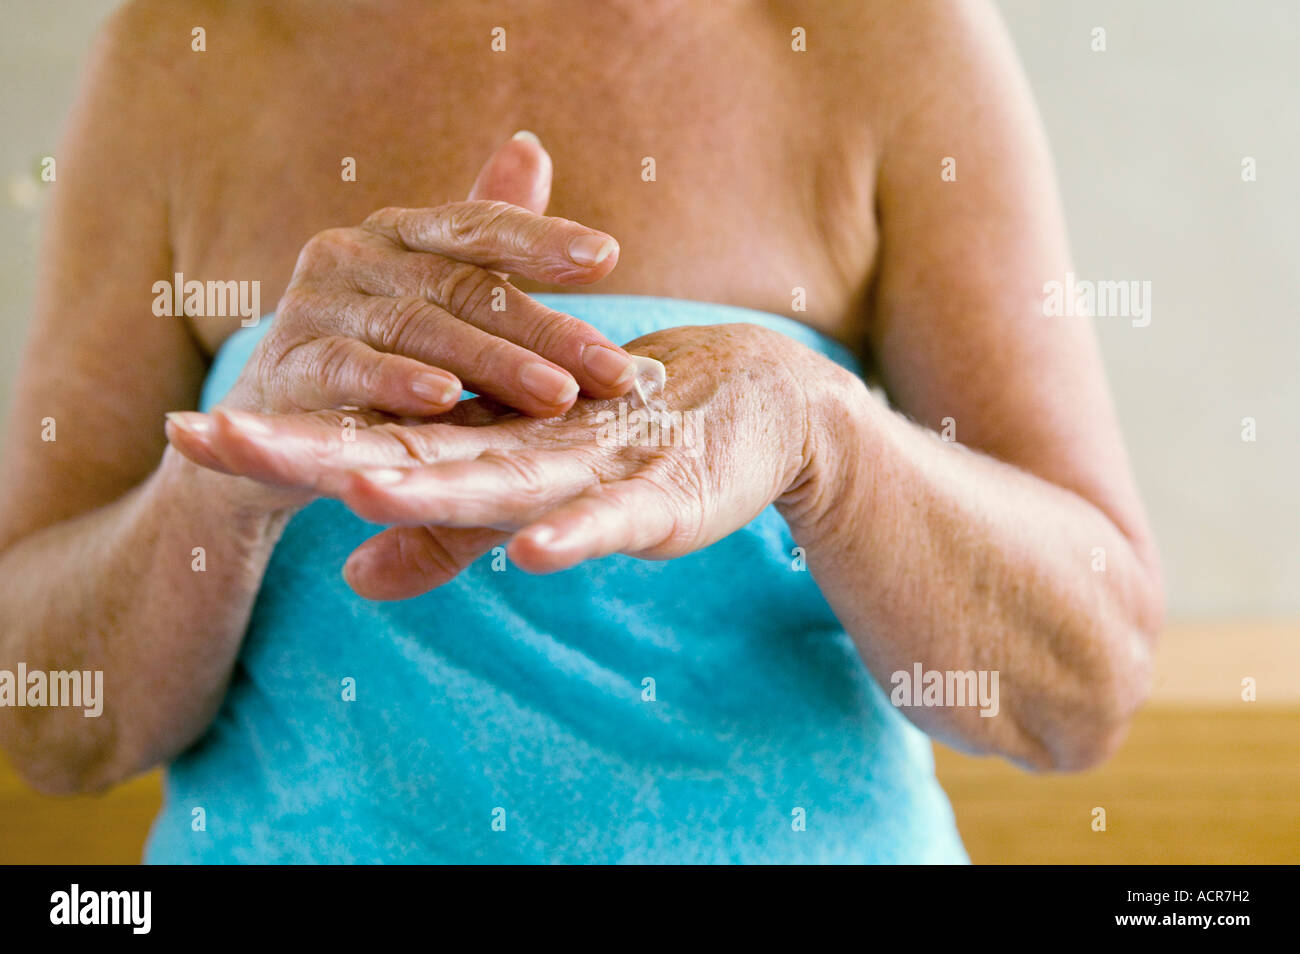 Senior woman wrapped in towel, applying lotion in hands, mid section, close-up - Stock Image